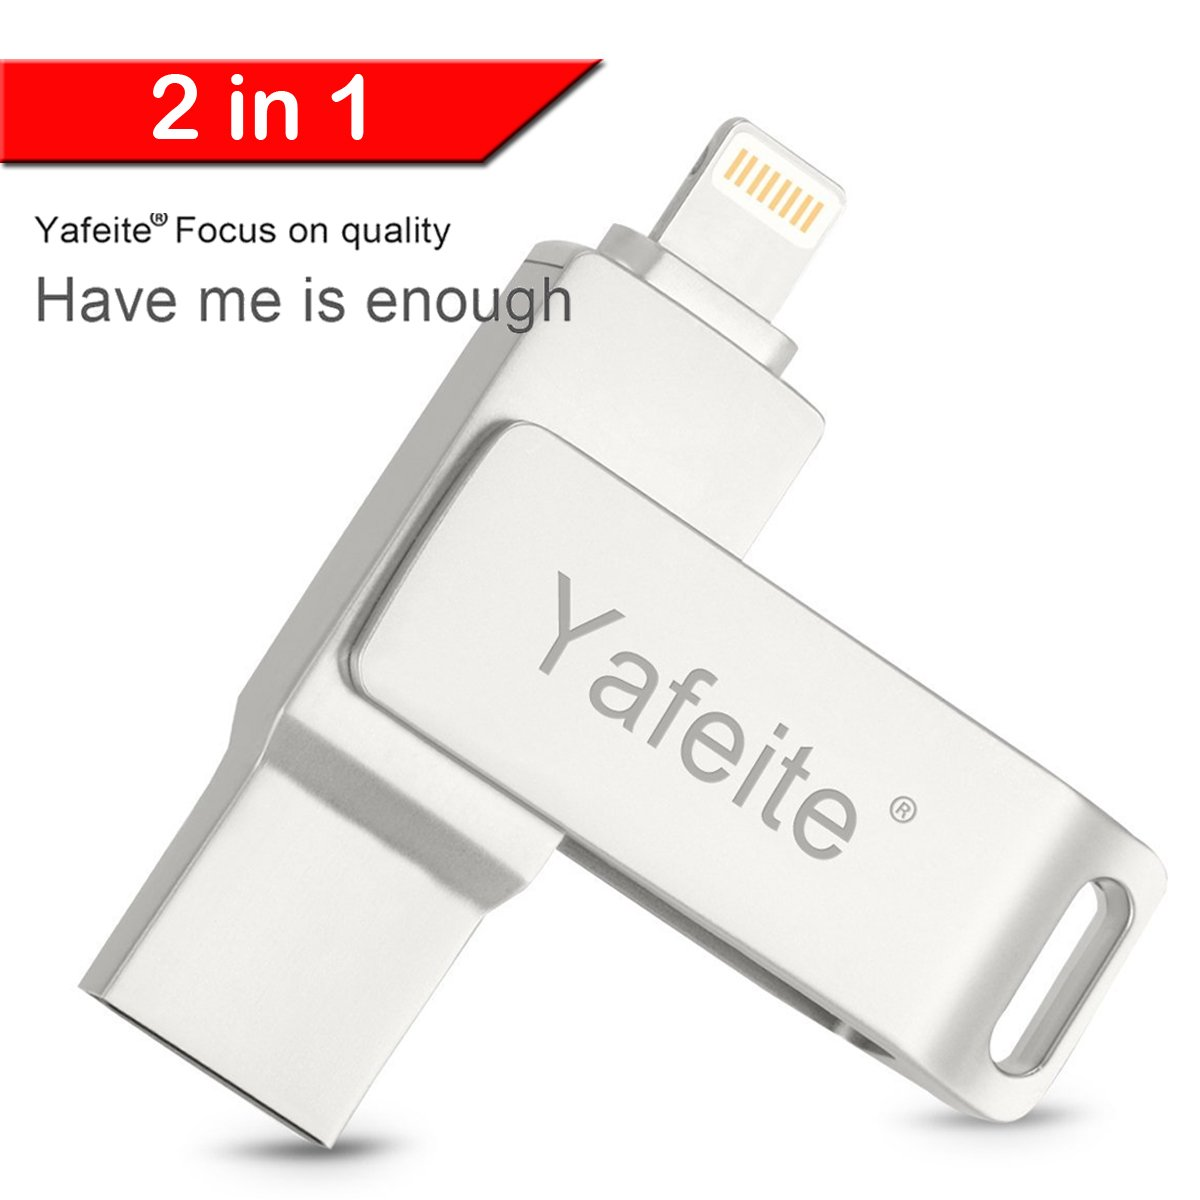 USB Flash Drive 32GB External Storage Expansion Memory Stick, Thumb Drive Lightning Connect iPhone 8/X iPad iPod ios Android PC 2 in 1 Silver